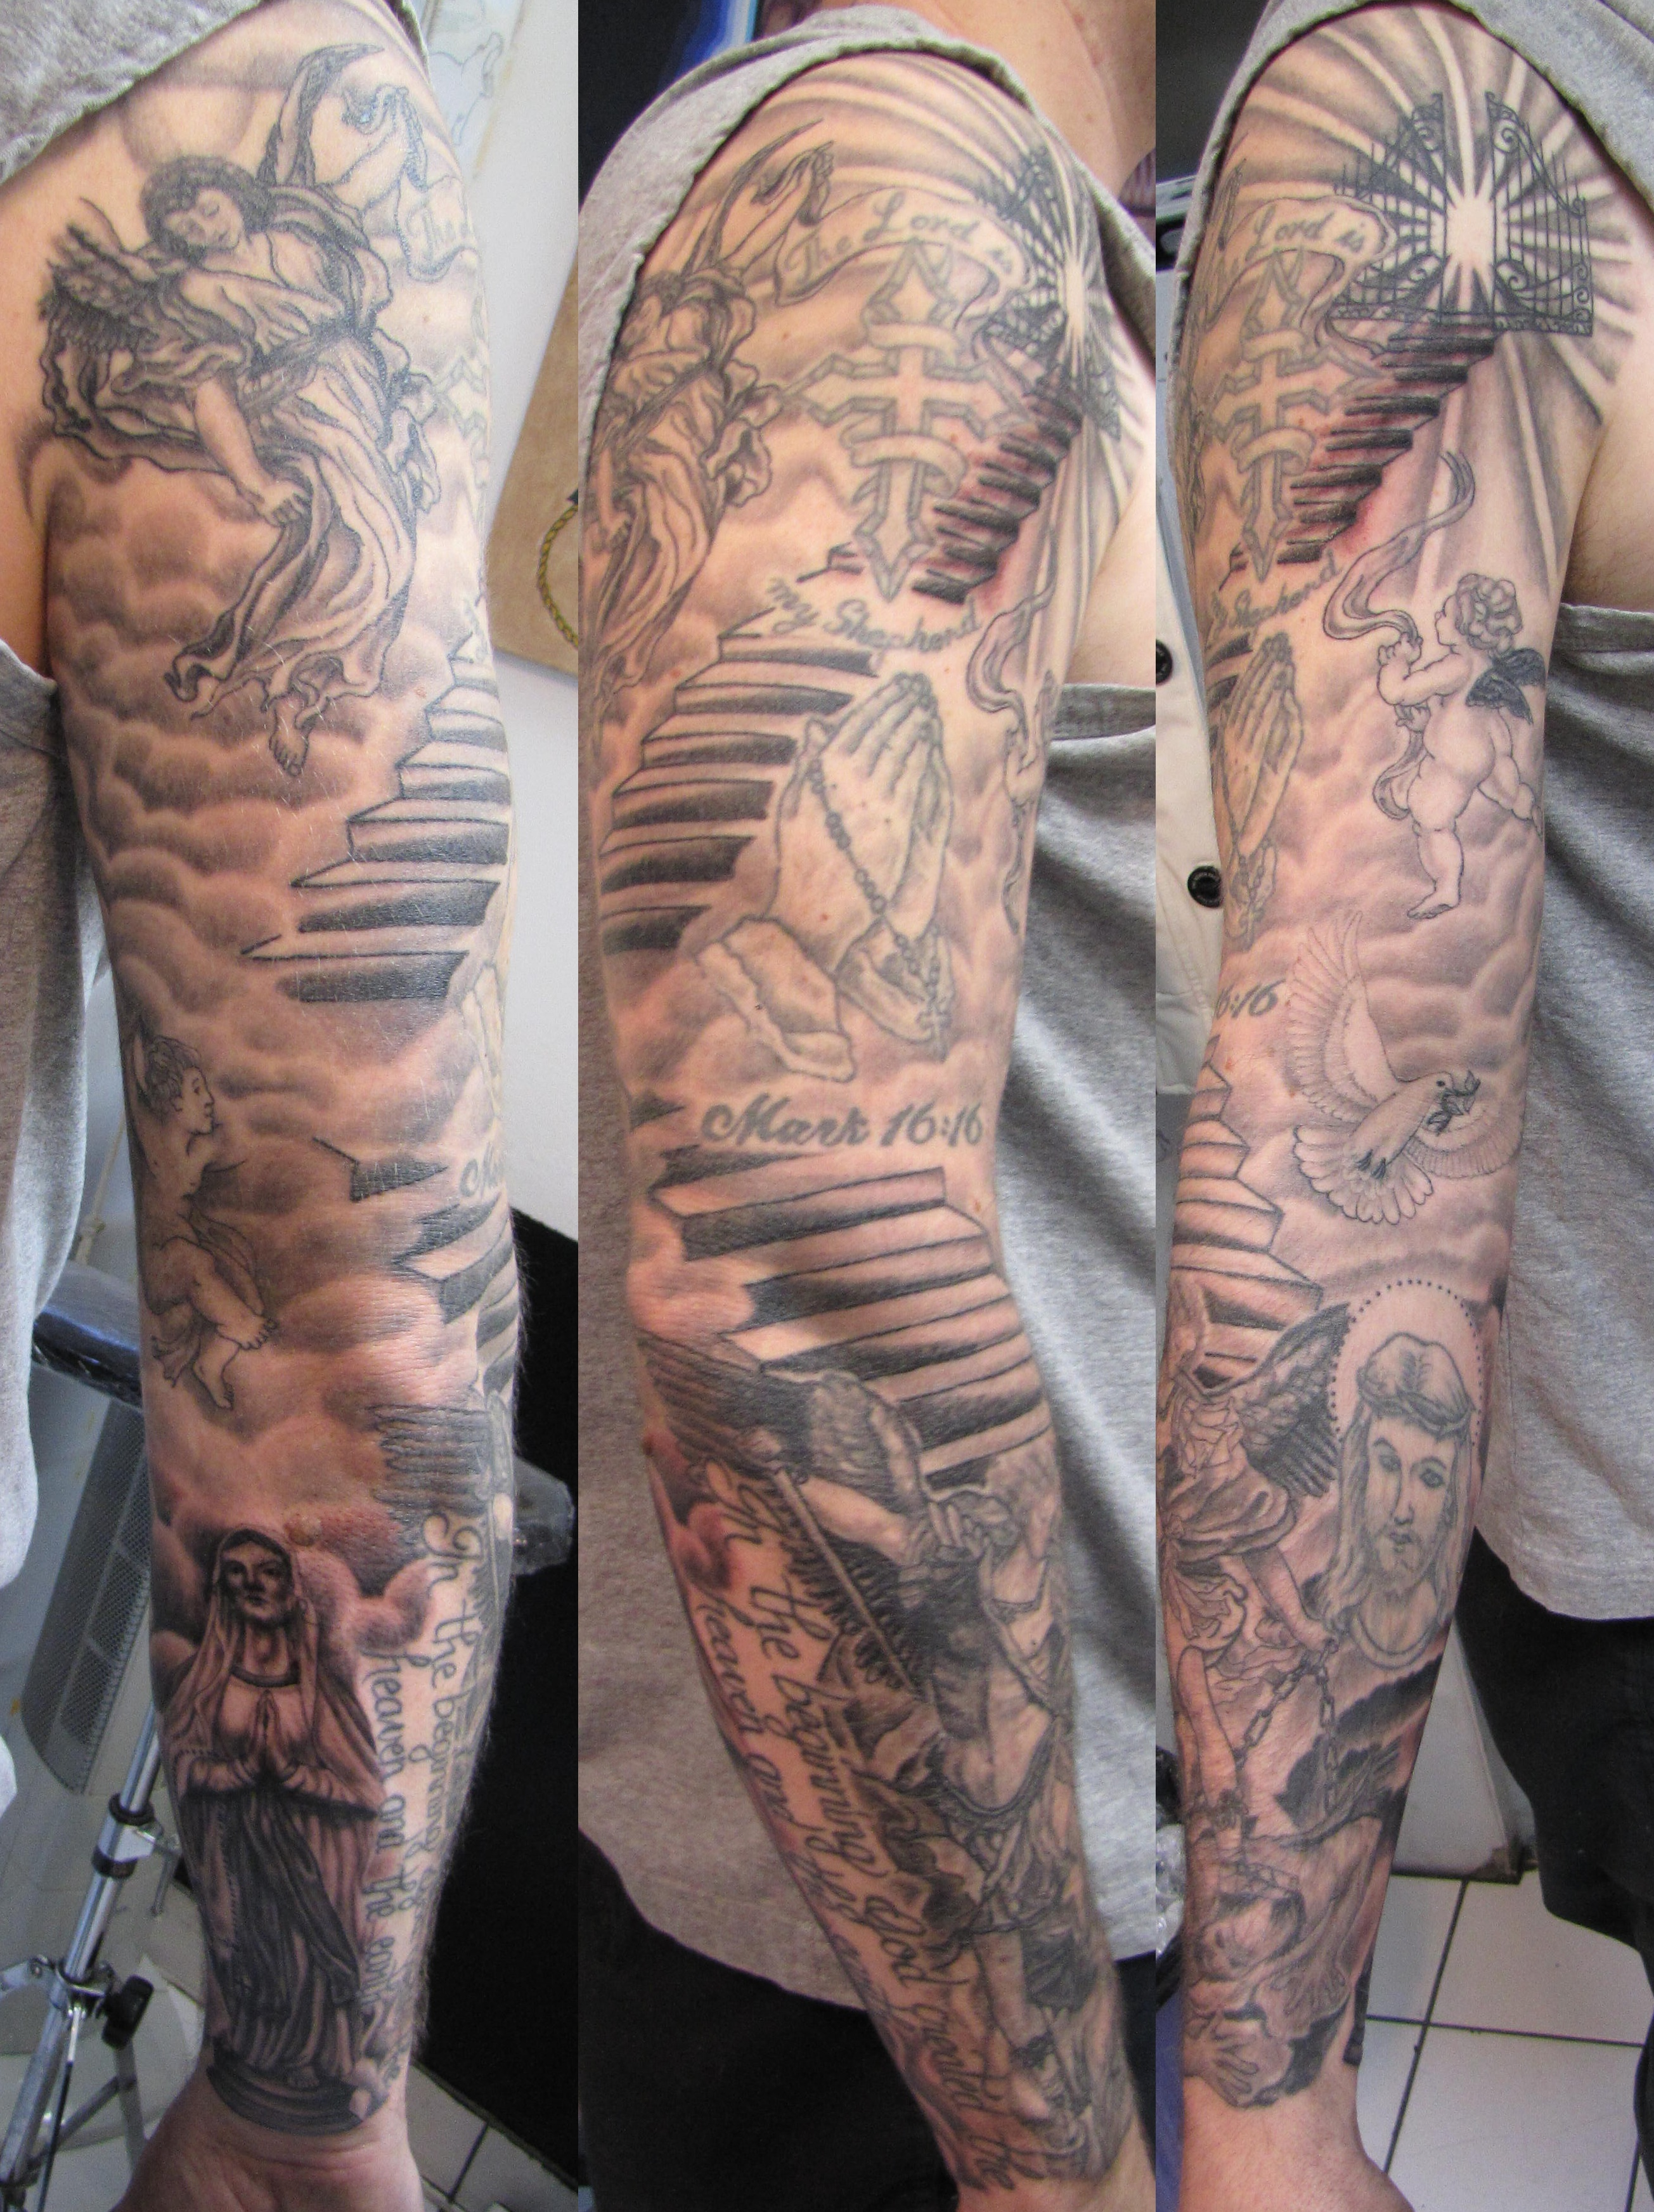 26 angel sleeve tattoos ideas for Tattoos for men on arm sleeves